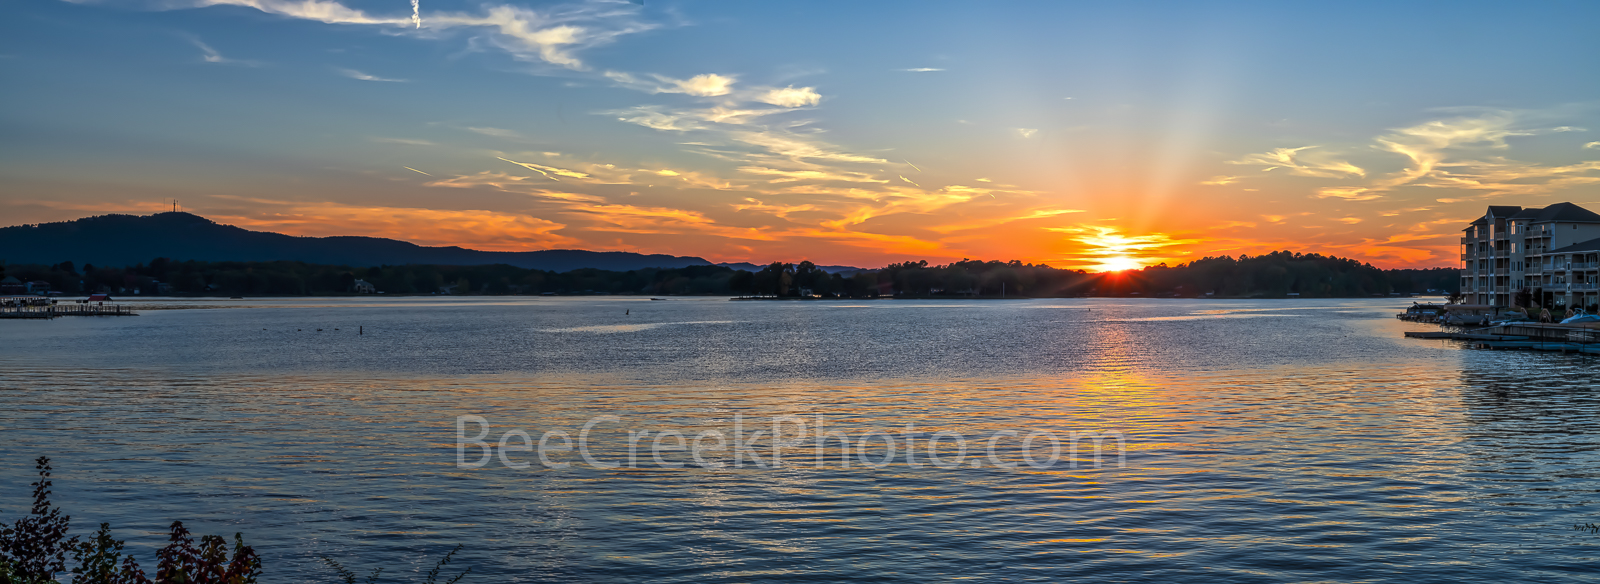 lake hamilton, sunset, hot springs, arkansas, city, pano, panorama, lake, forest, beautiful, fall,, photo